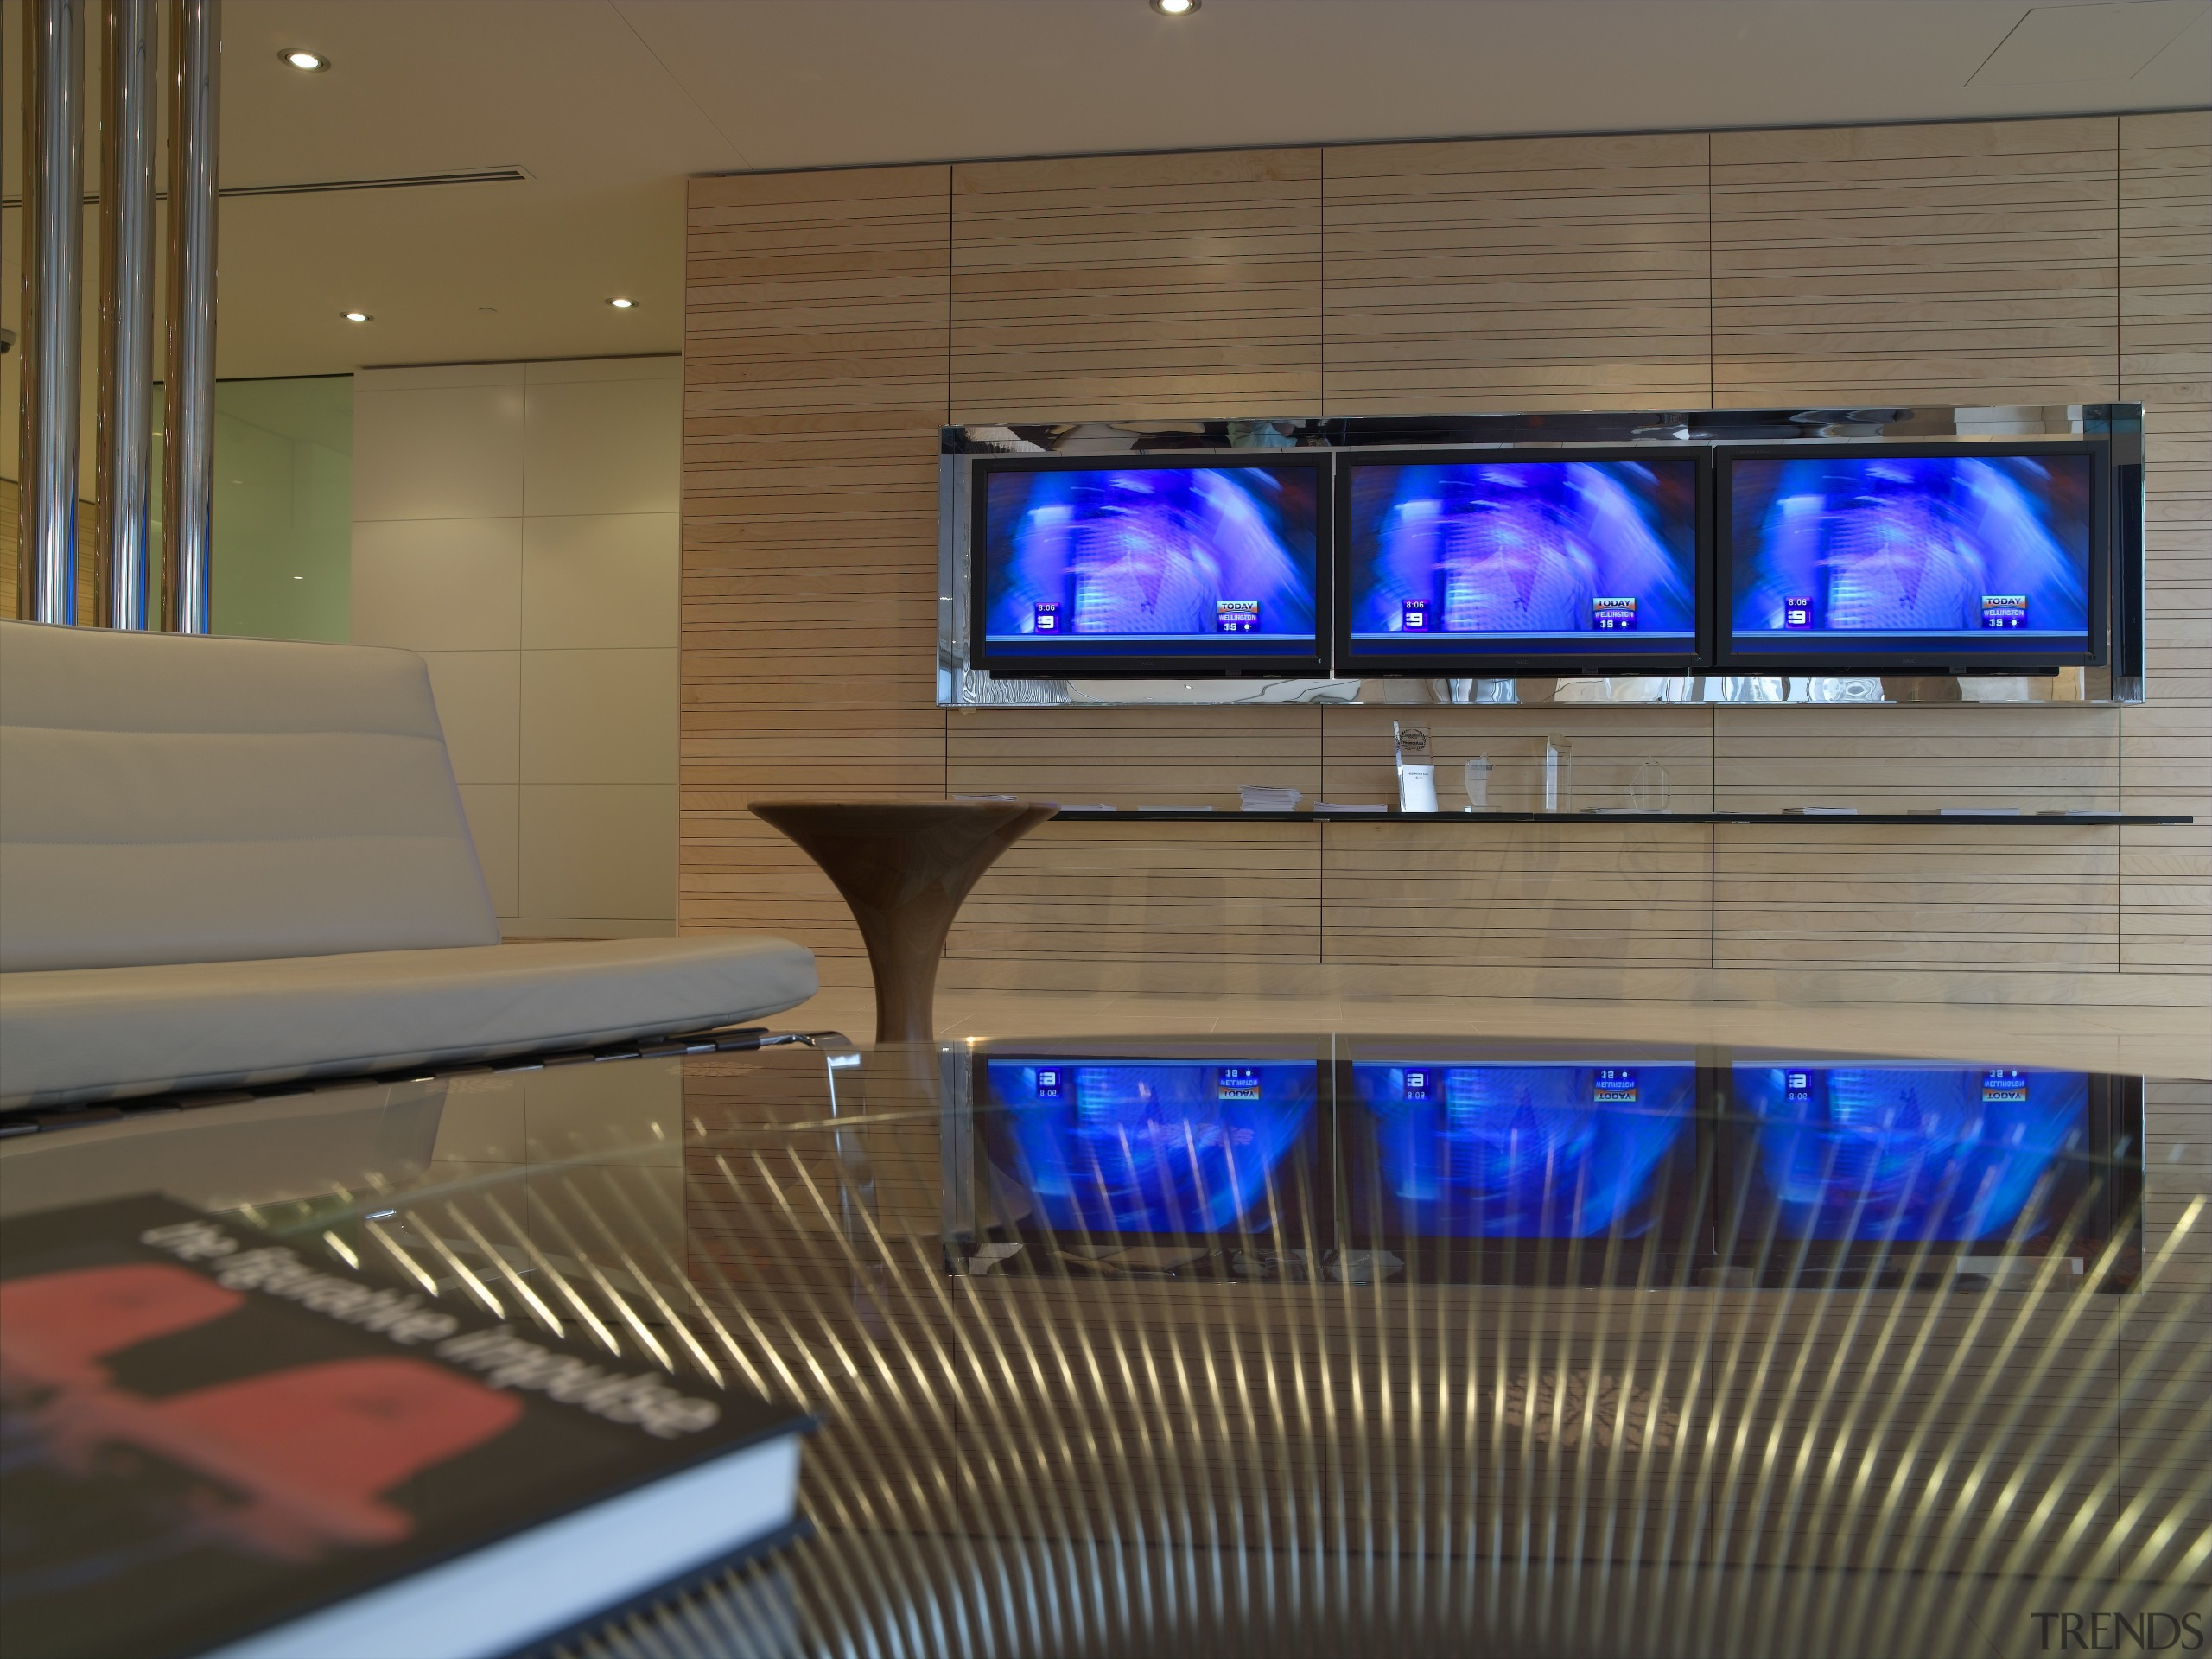 A view of the UBS offices, meetin rooms display device, interior design, brown